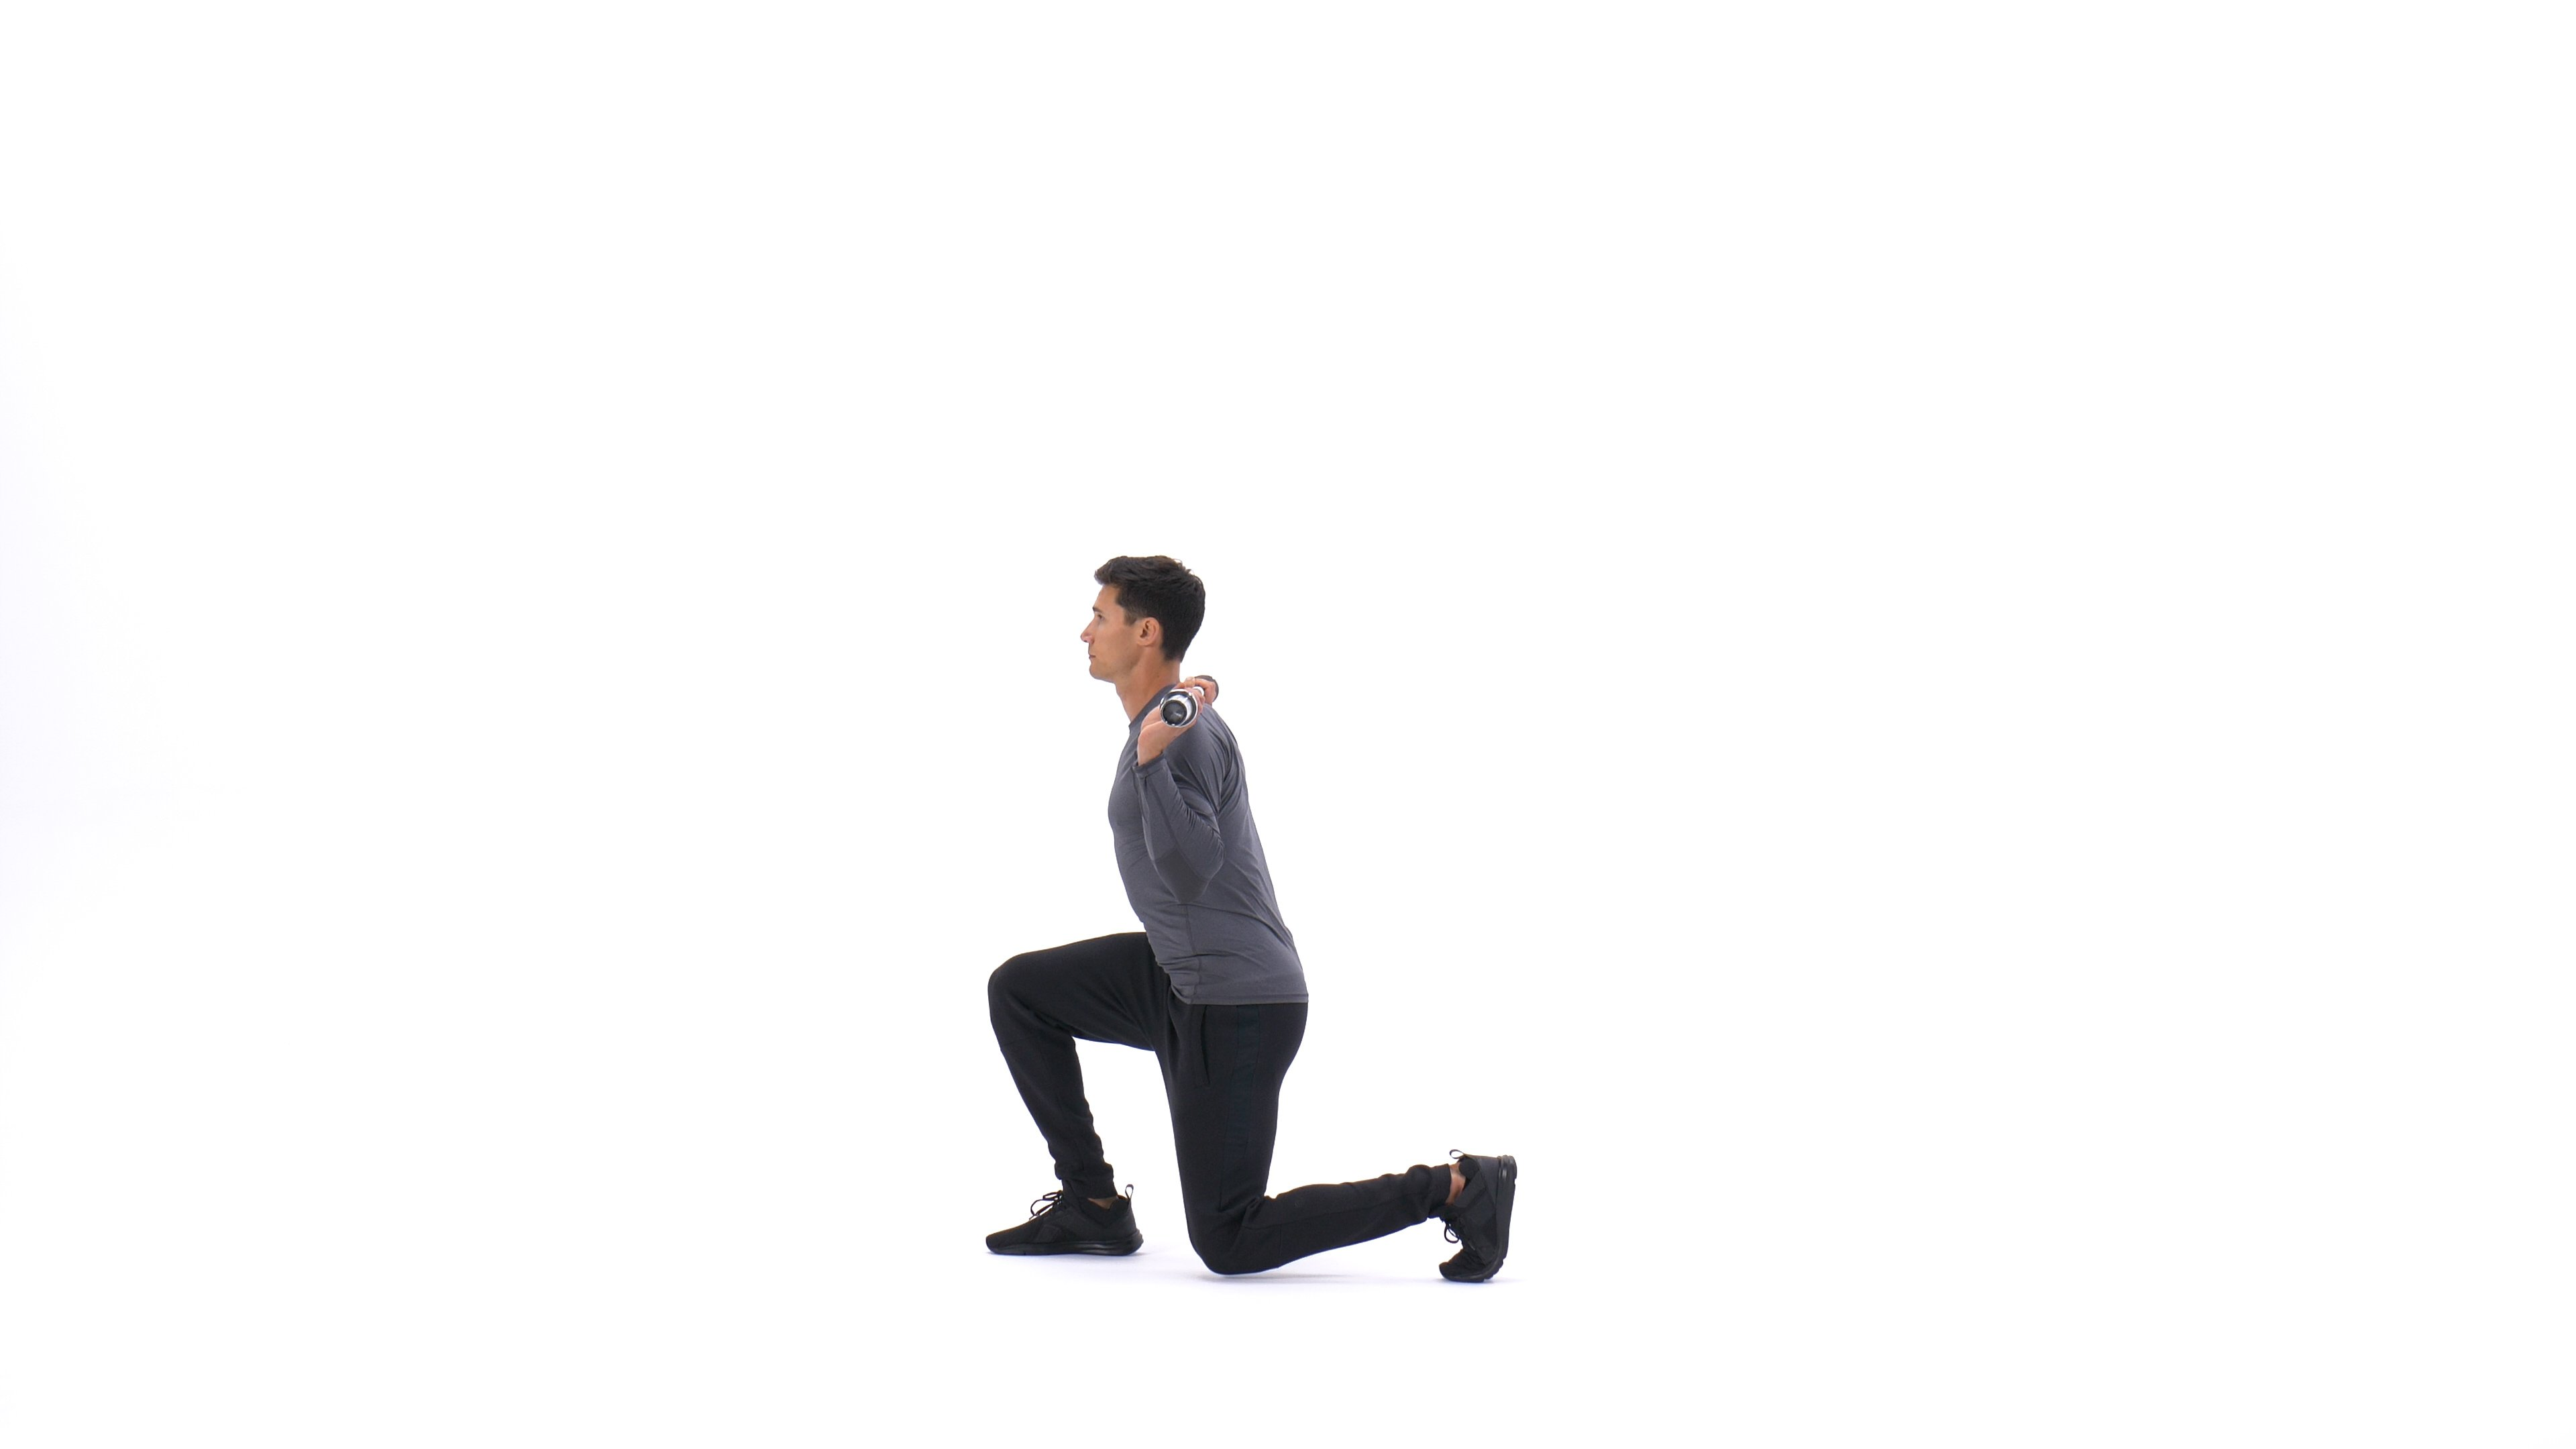 Barbell forward lunge image